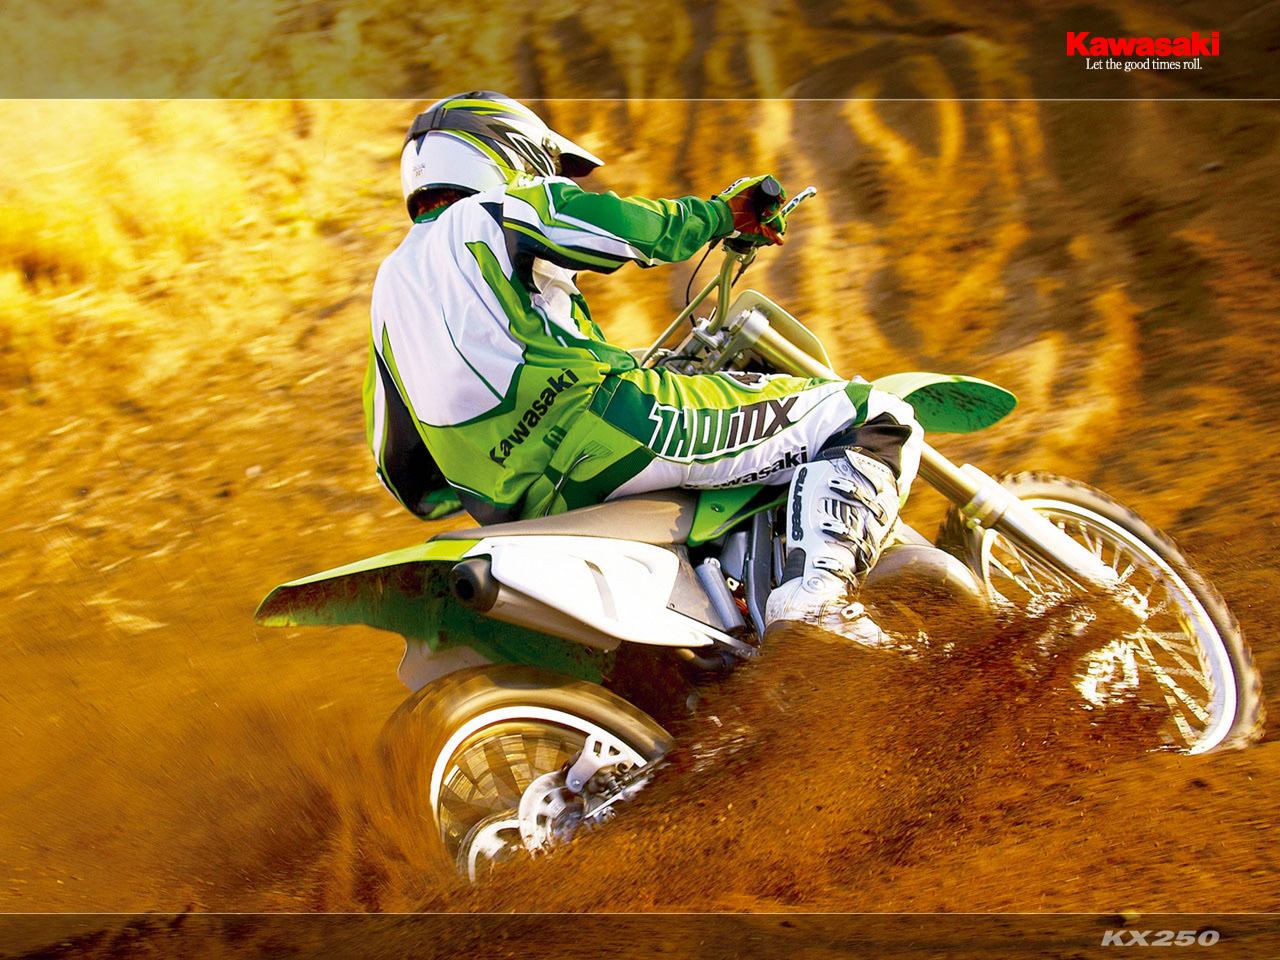 Wallpaper Kawasaki Klx 250  wallpaper